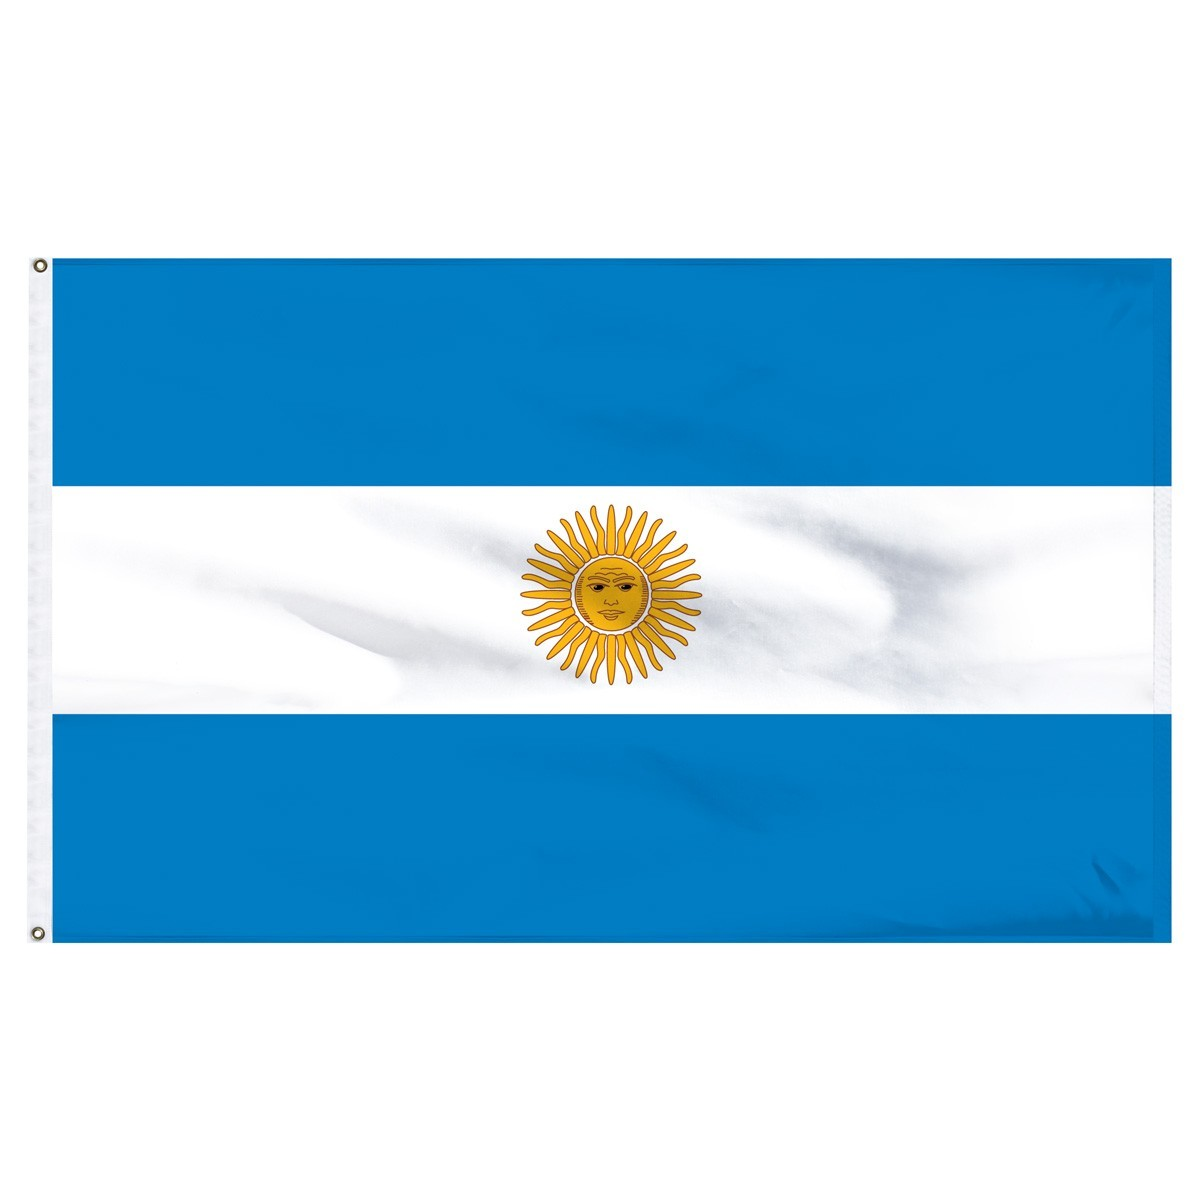 Argentina 3ft x 5ft High Quality Outdoor Nylon Flag